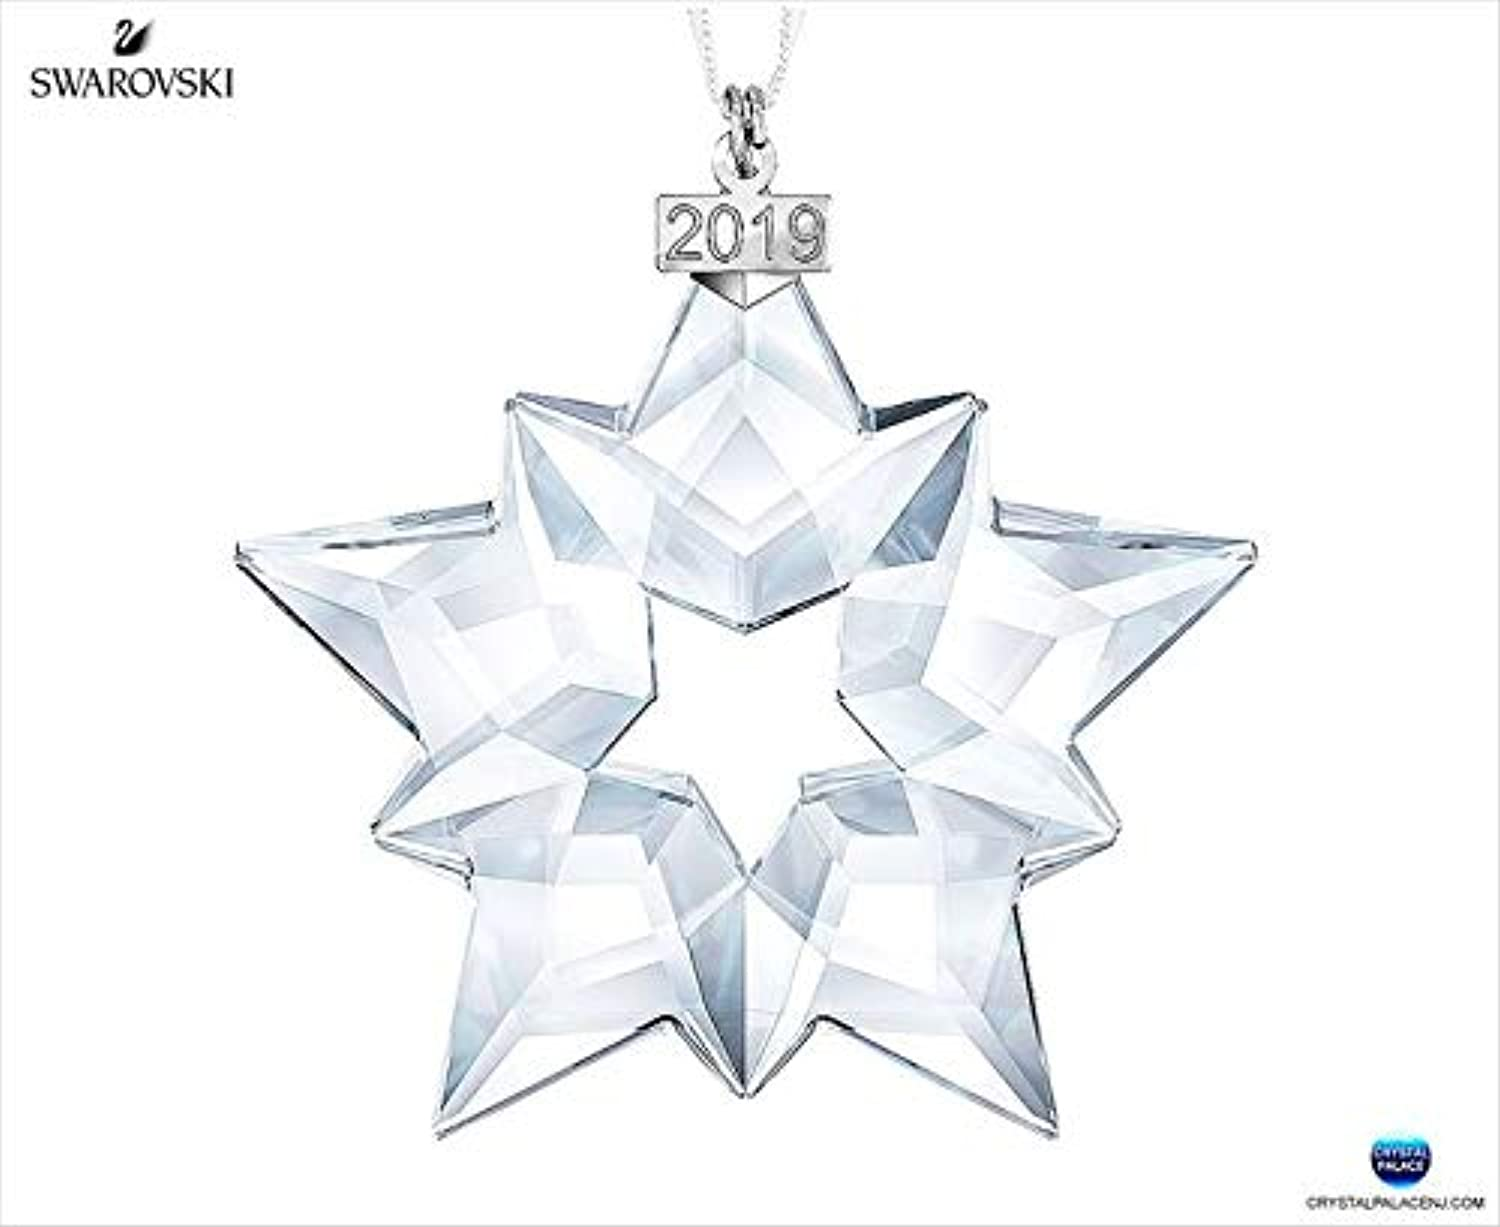 Swarovski Annual Edition 2019 Christmas, Large Chrsitmas Ornament, Clear